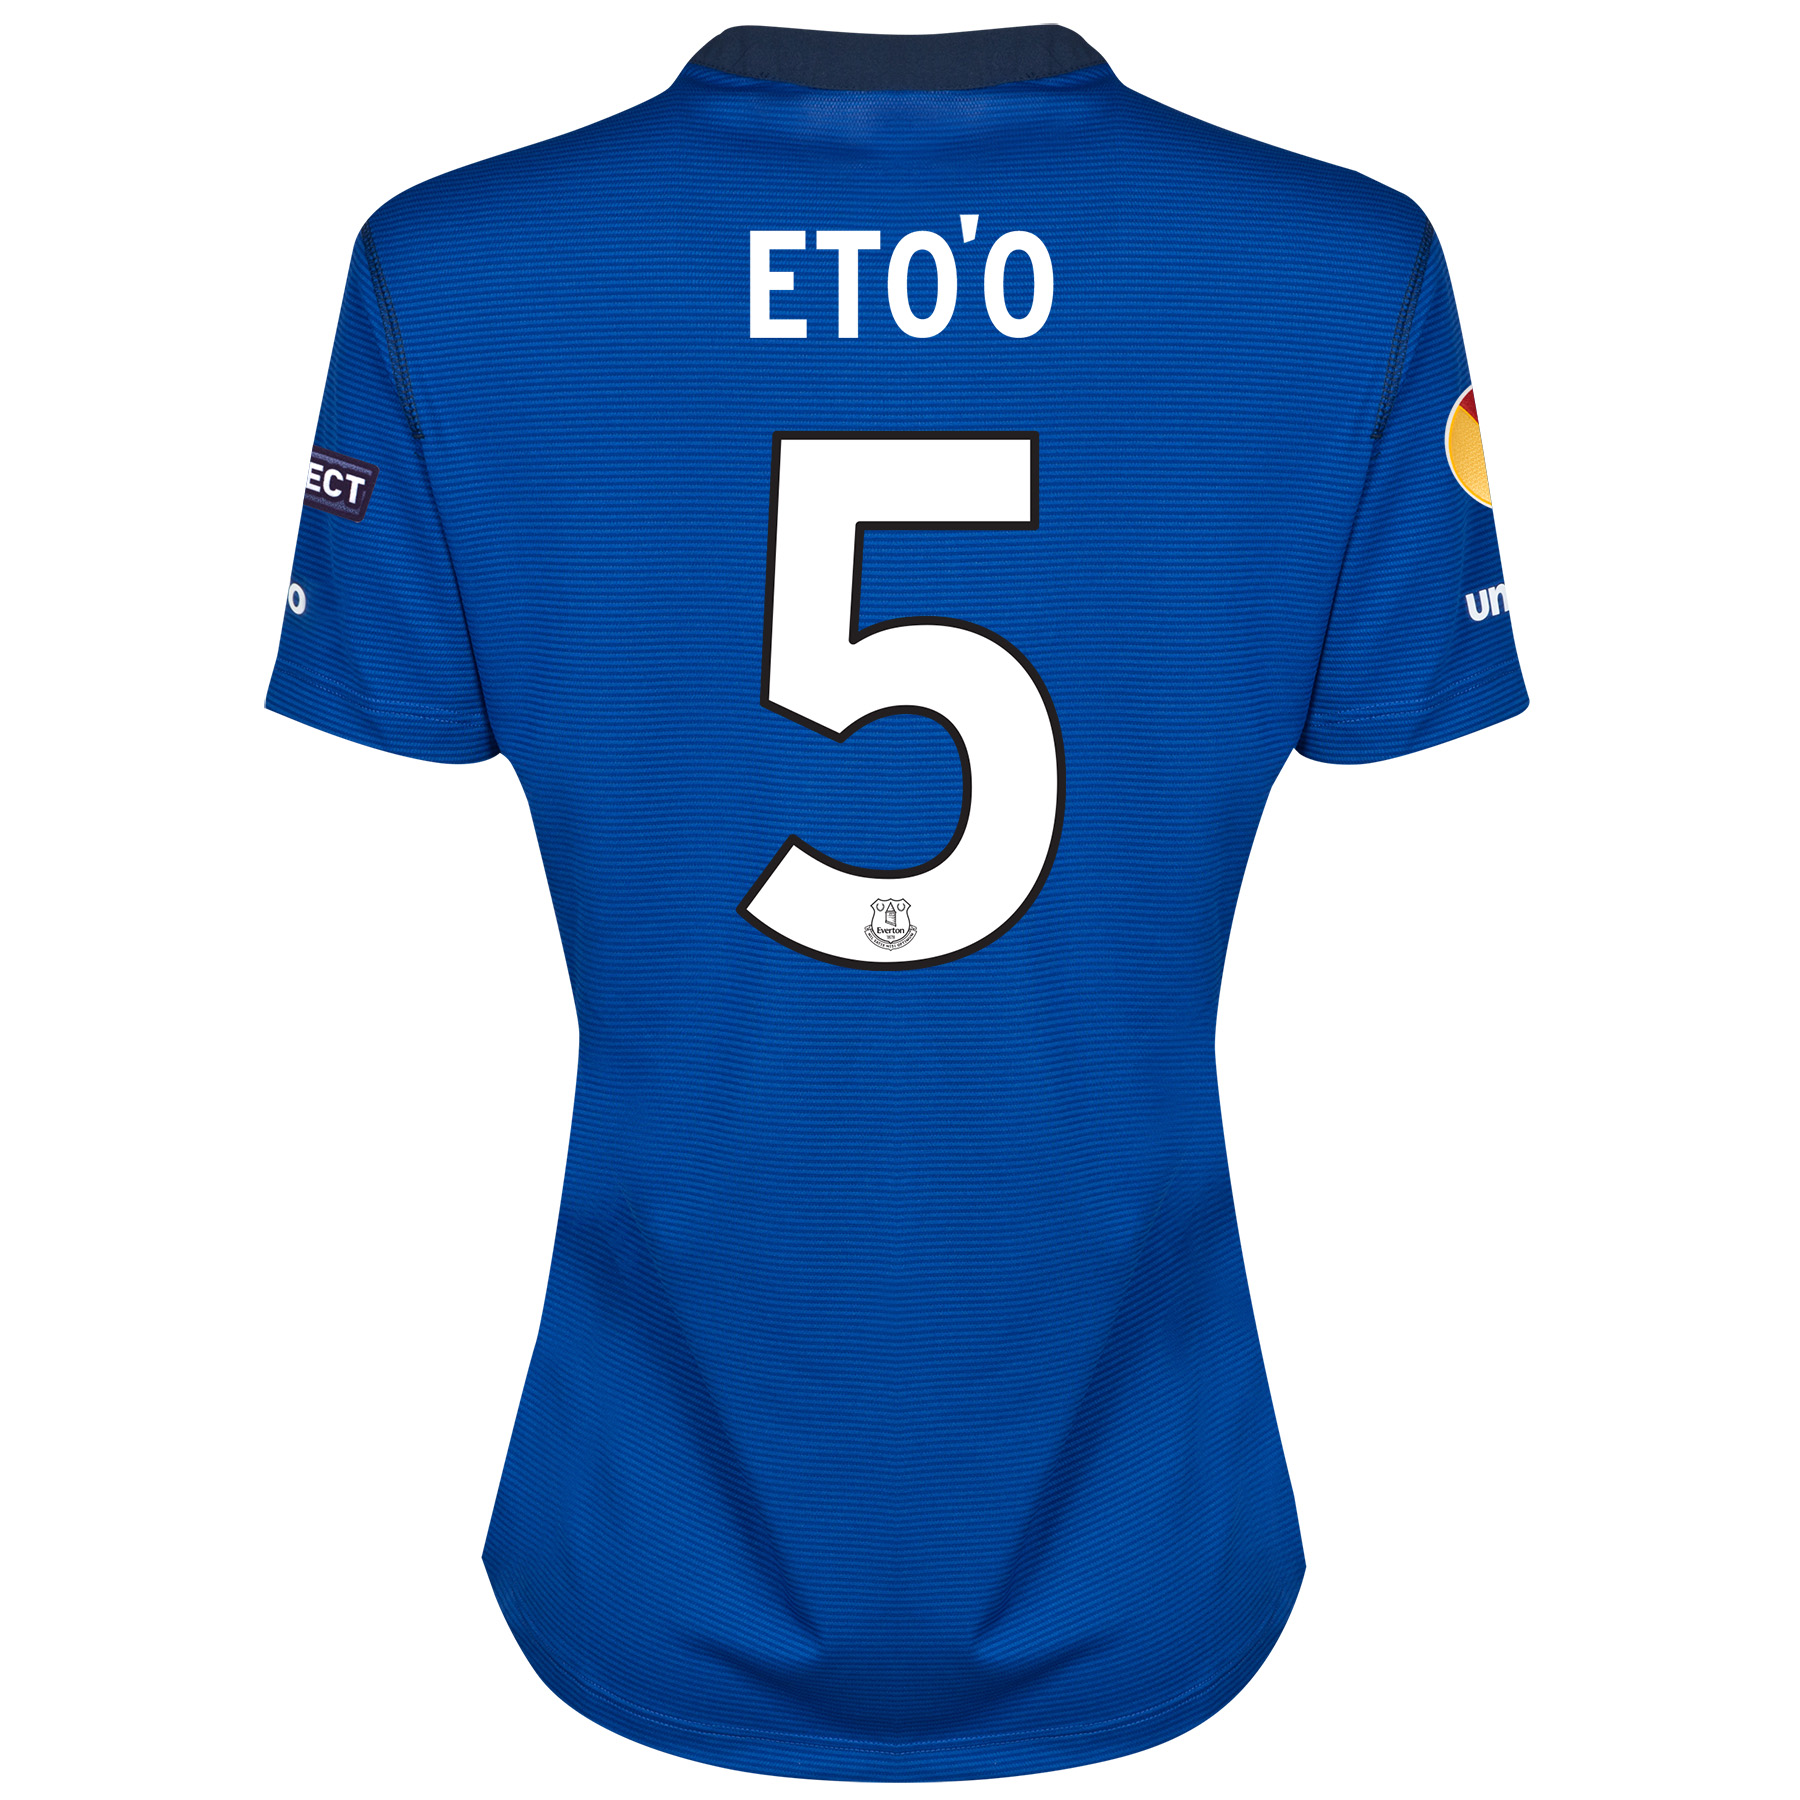 Everton UEFA Europa League SS Home Shirt 2014/15 - Womens with Eto'o 5 printing